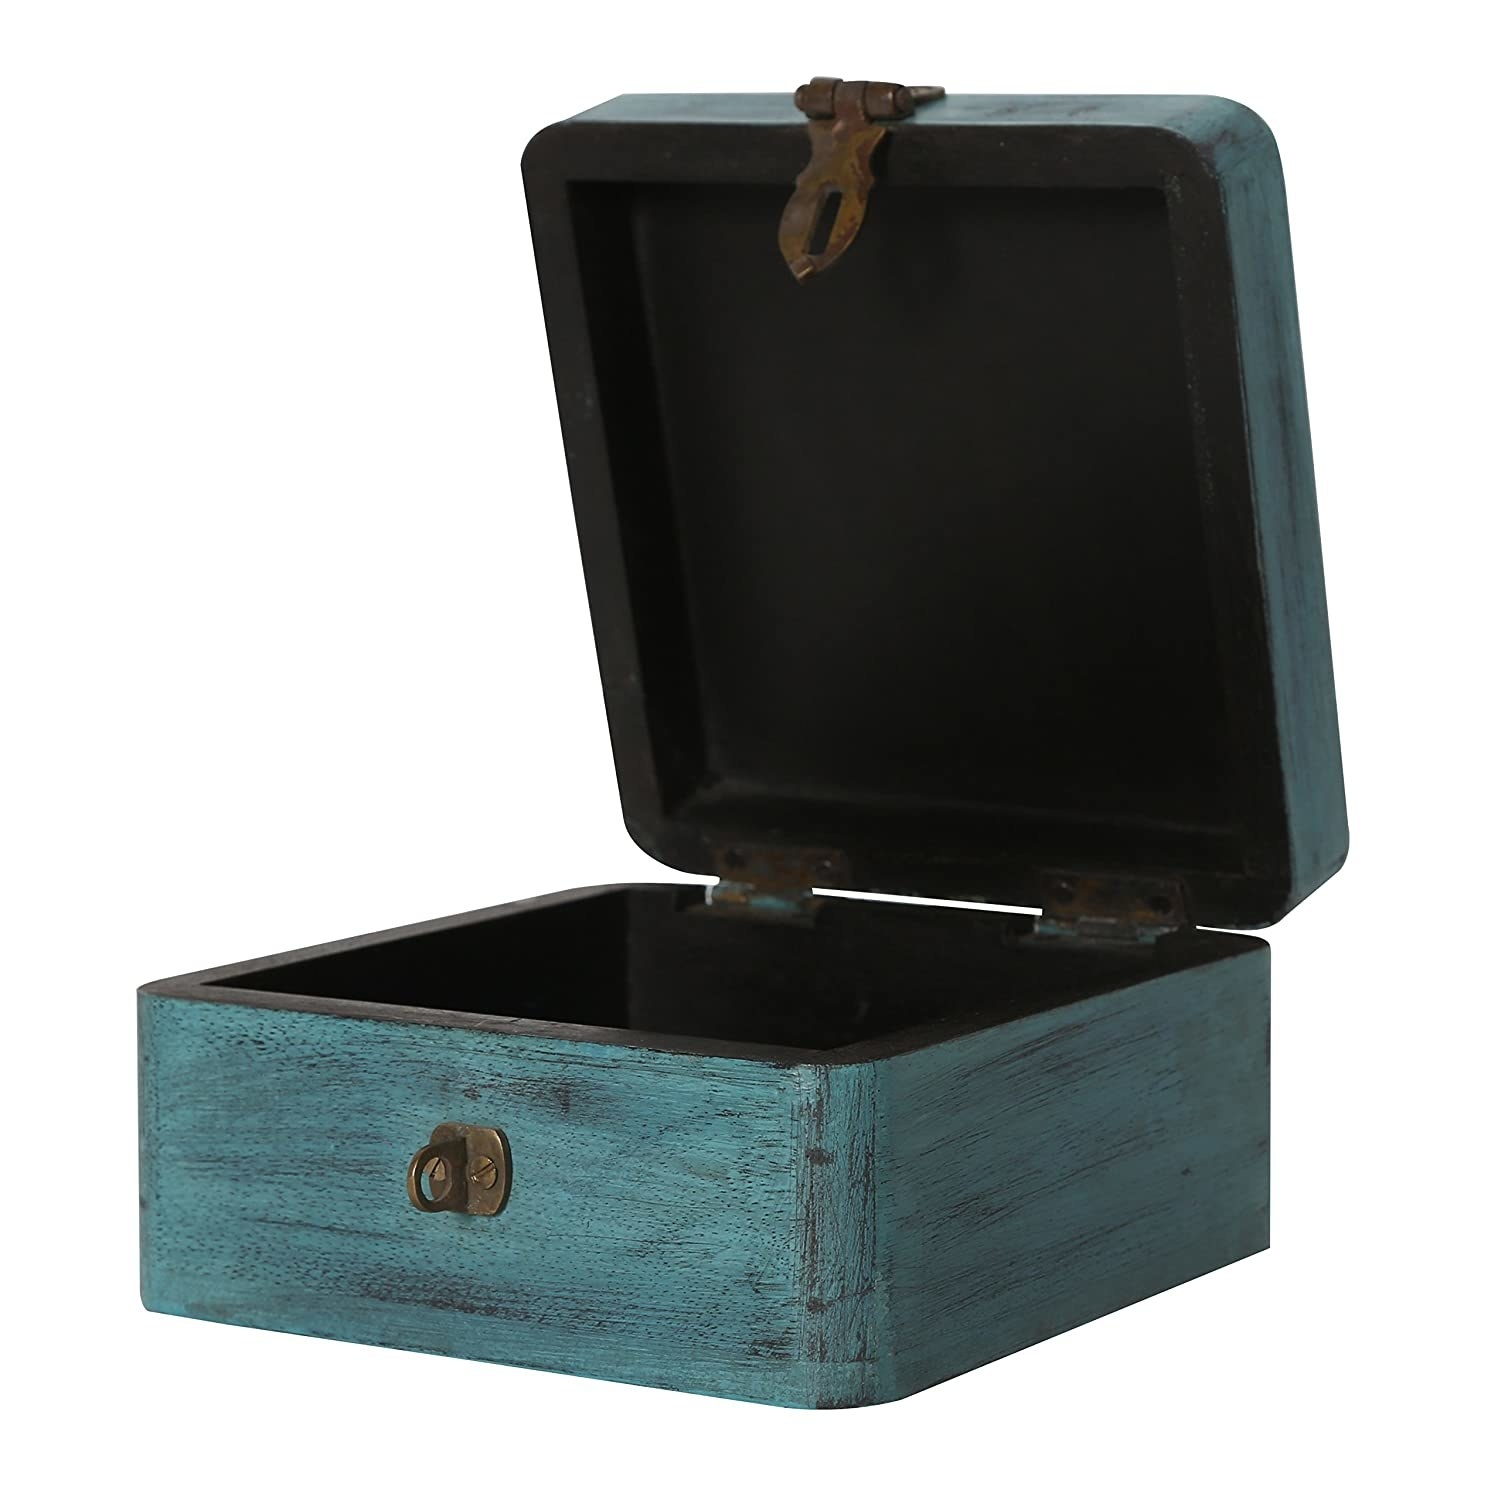 A blue hand-painted wooden box with a rustic finish,